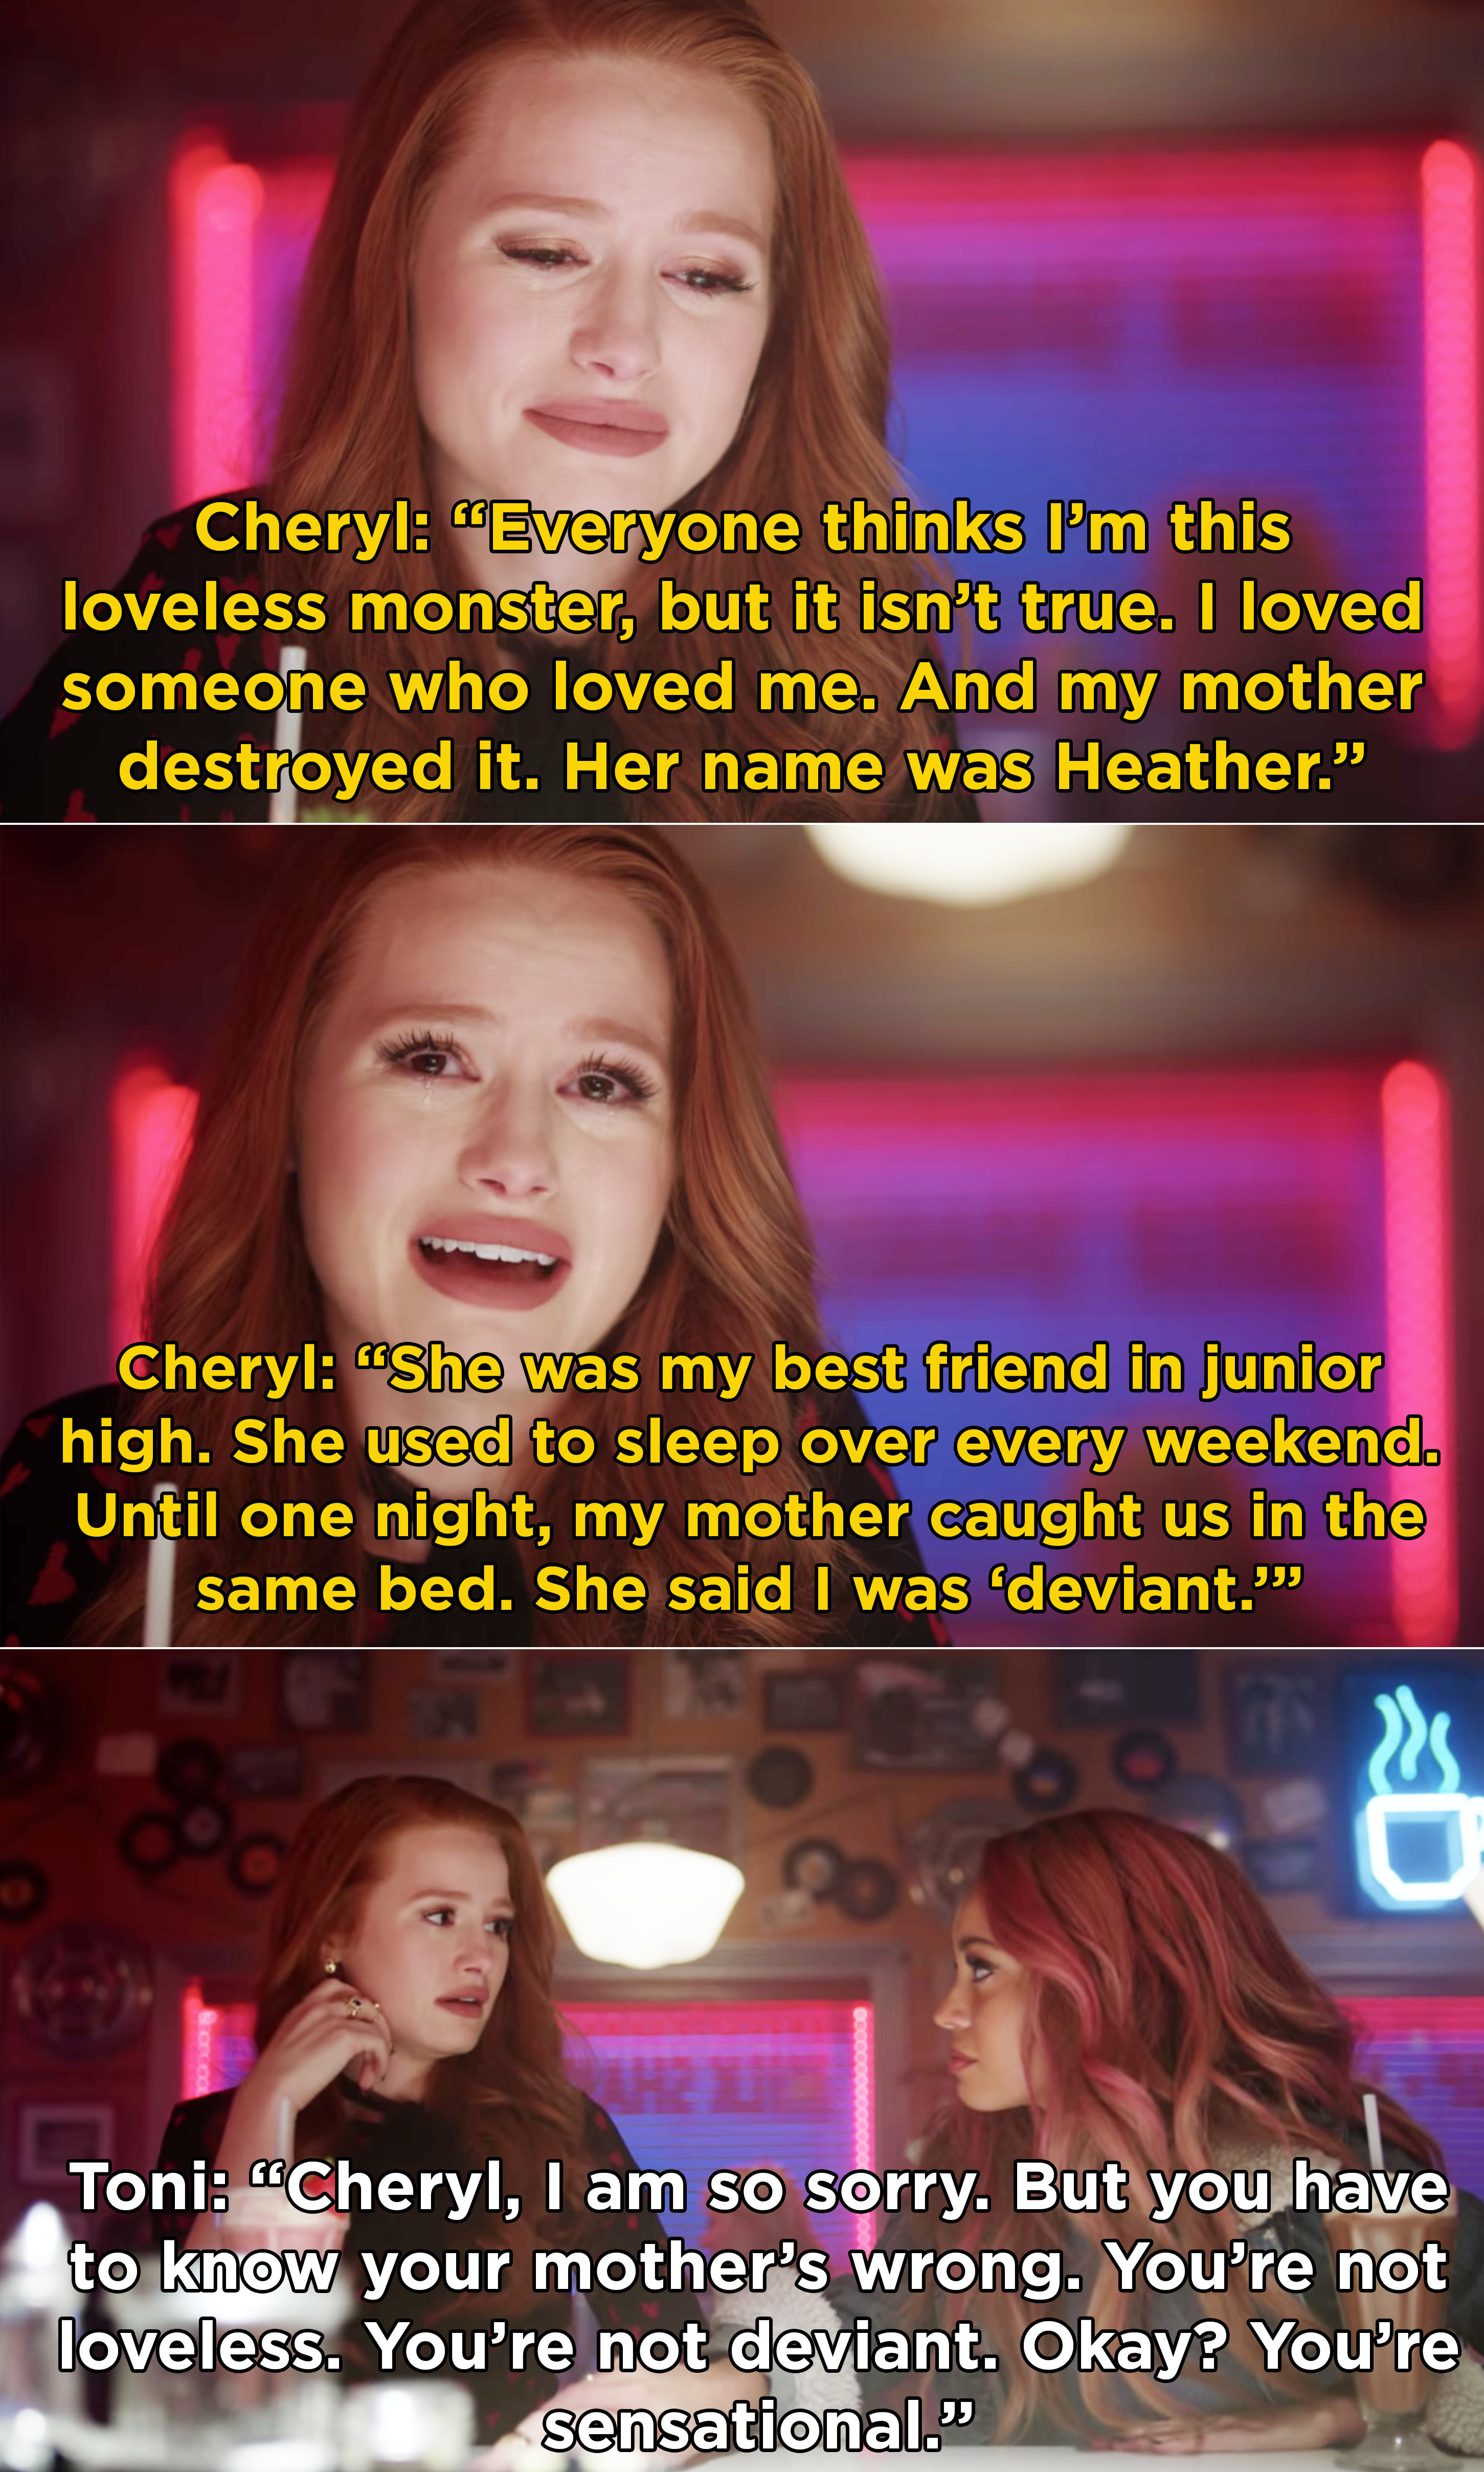 Cheryl coming out to Toni and telling her about loving her friend Heather but her mom didn't approve